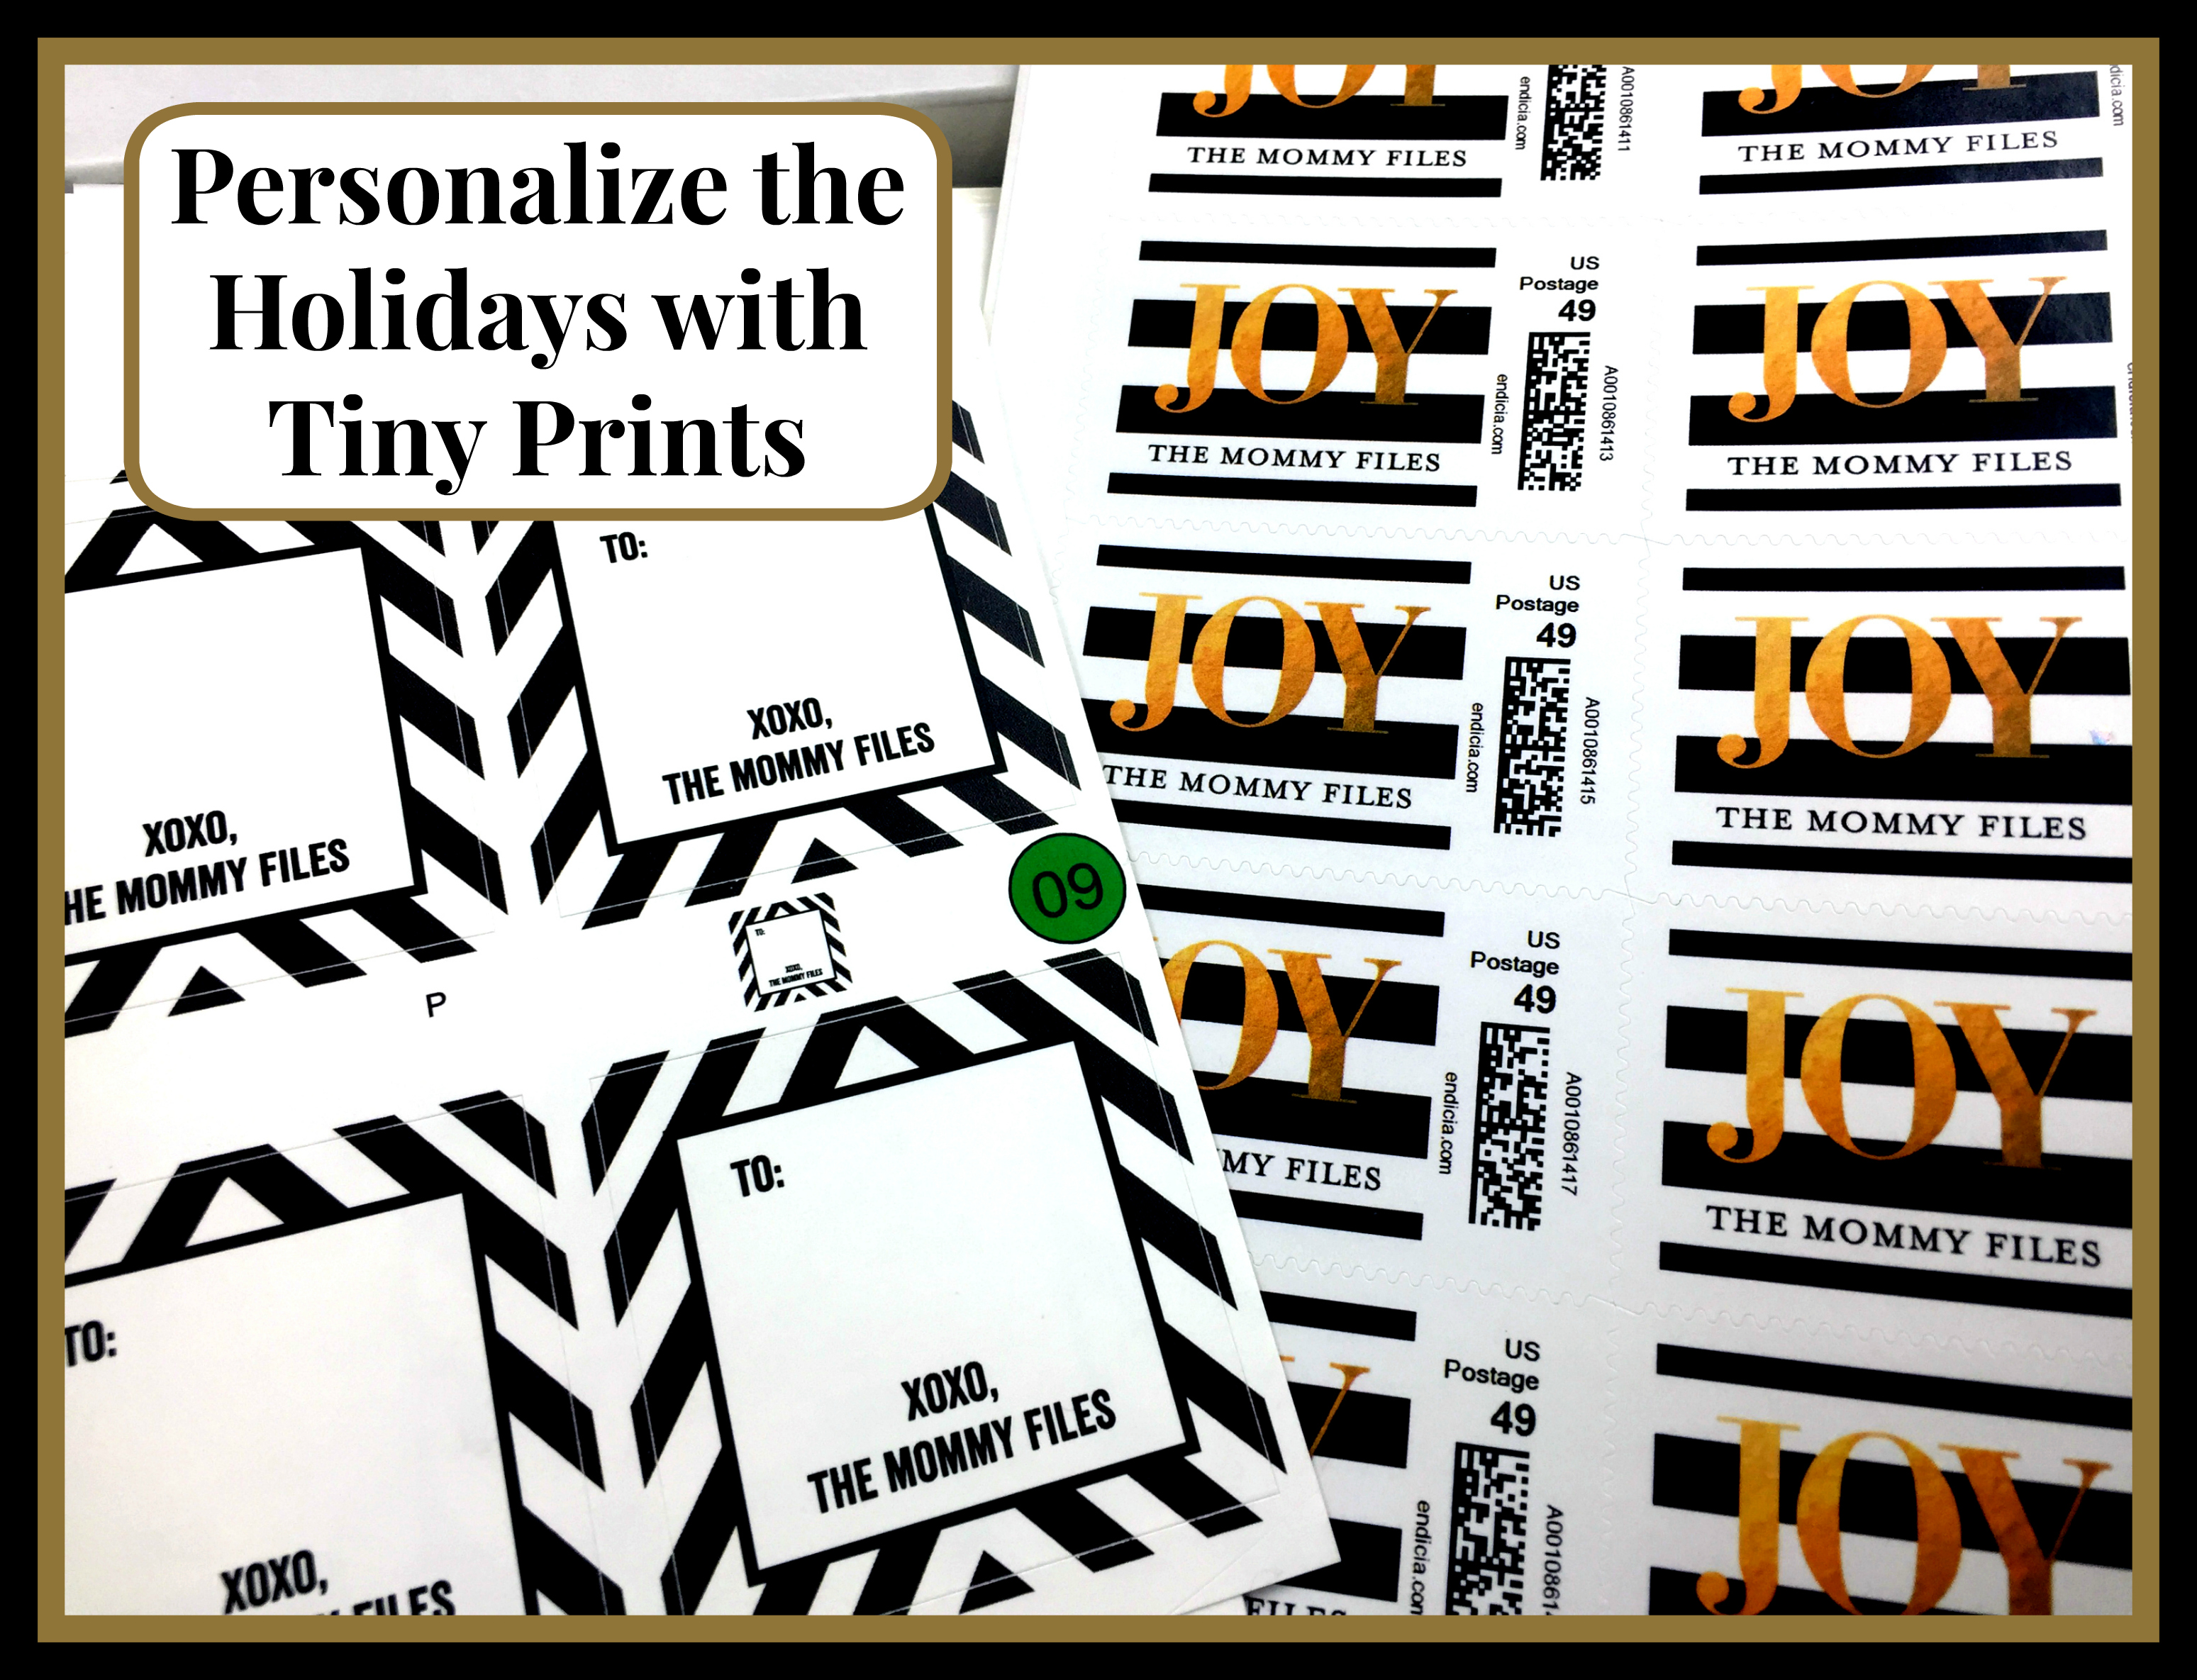 #TinyPrints #Holidays #ad